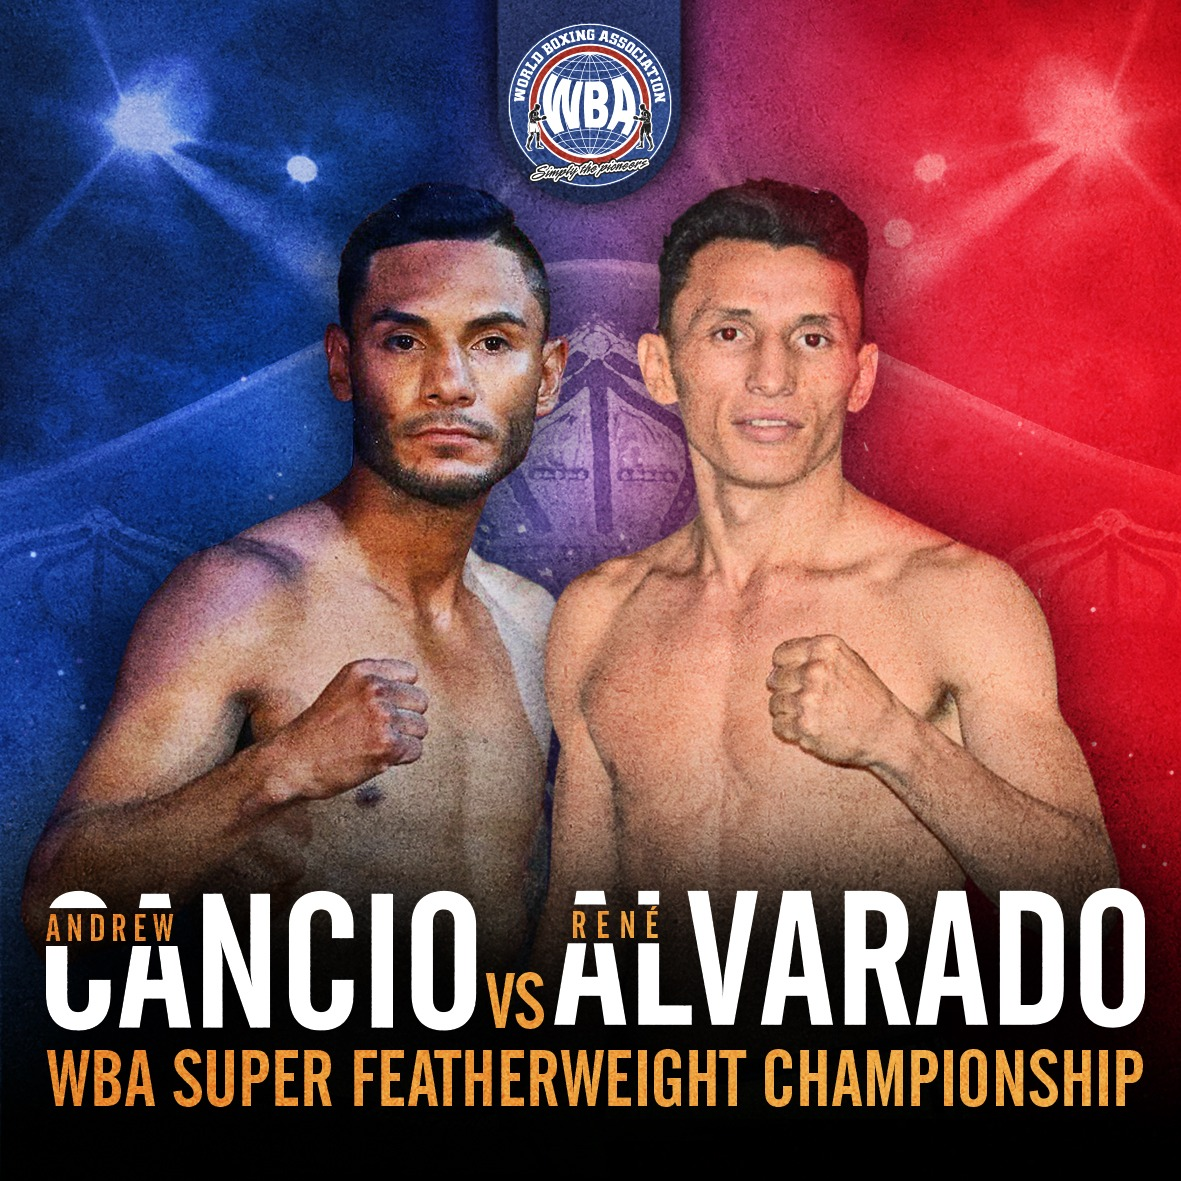 Xu vs Robles and Cancio vs Alvarado WBA title fights headline Fantasy Springs Casino bouts